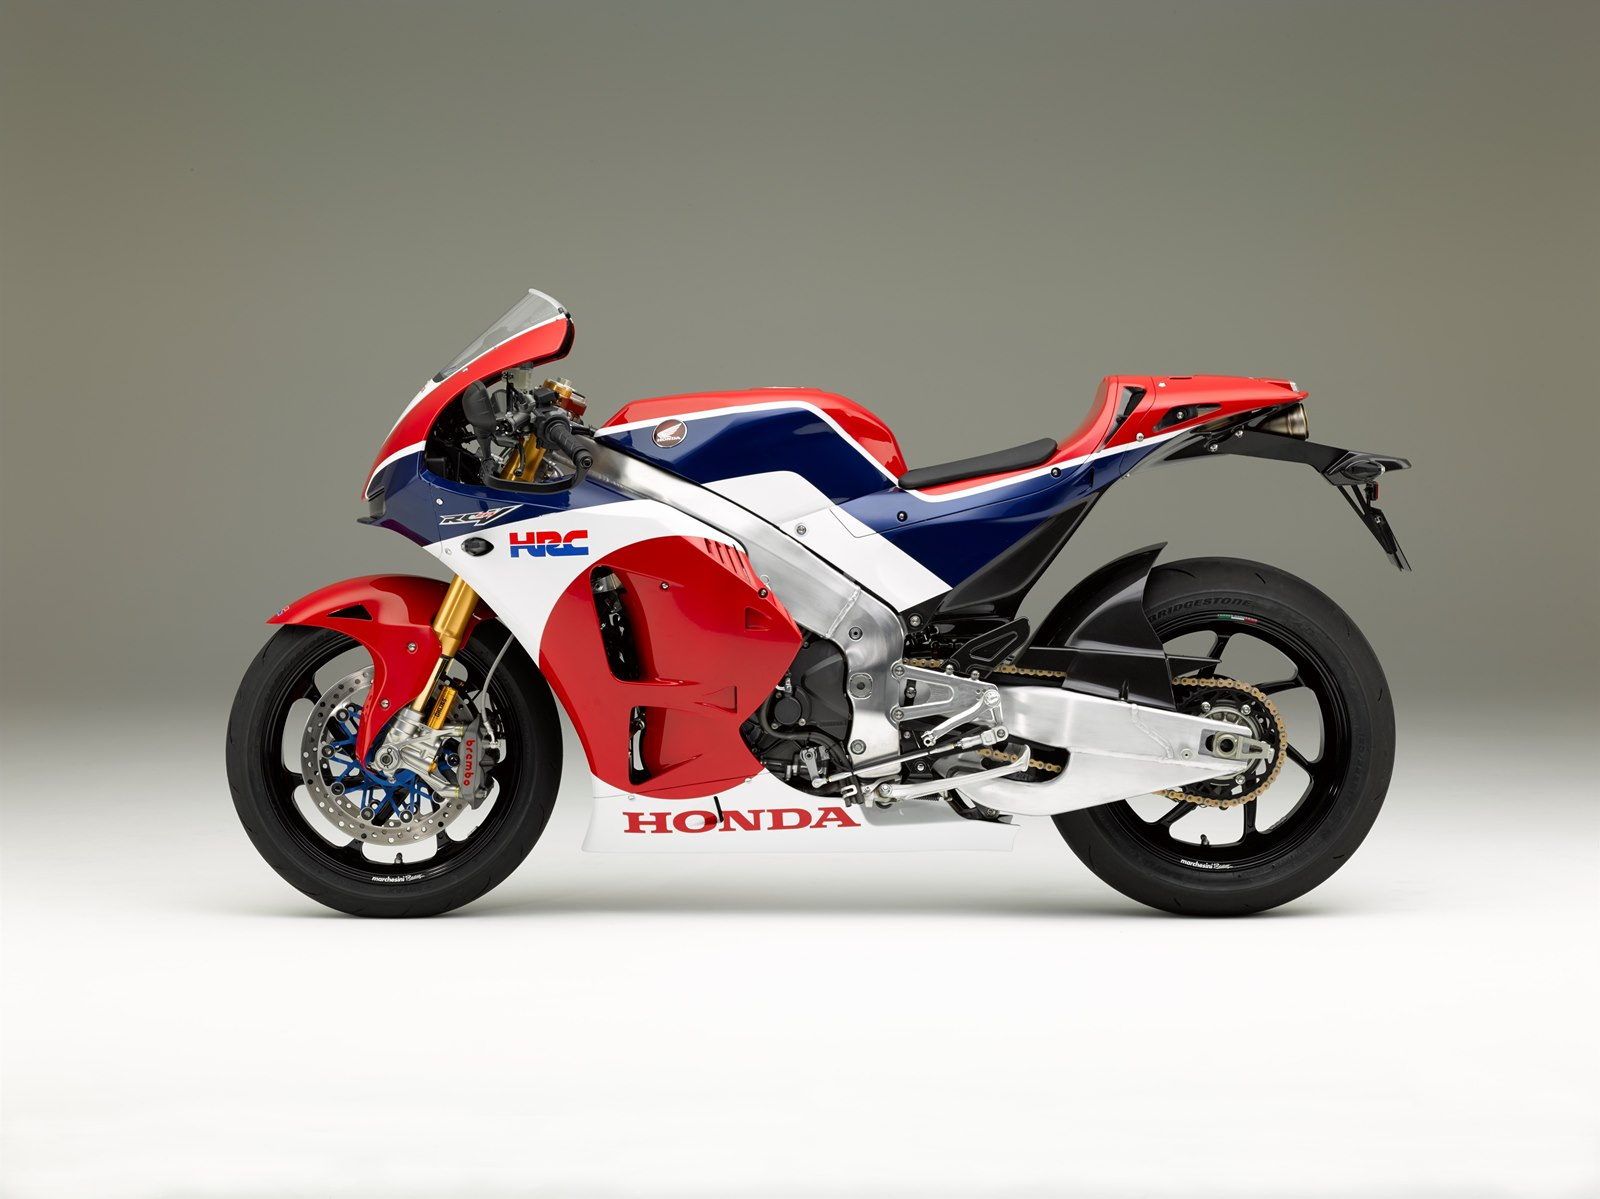 Honda RC213V-S left side view